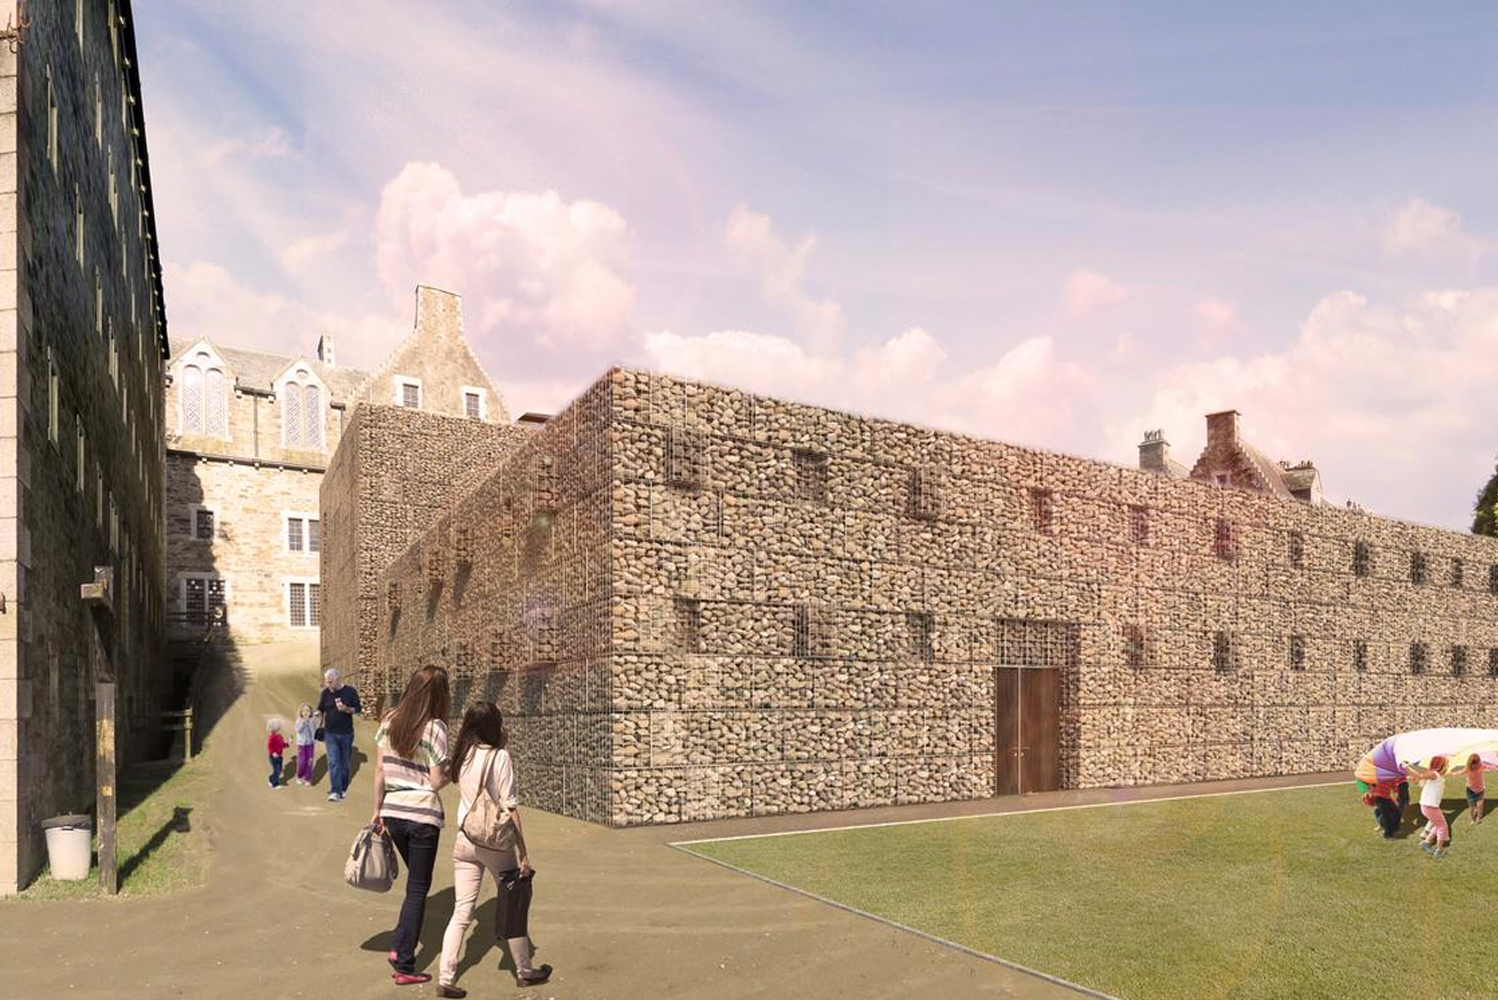 Across the building, a pattern of gabions sitting forward and back of the facades, will break up the massing and echo the fenestration of the jail building.